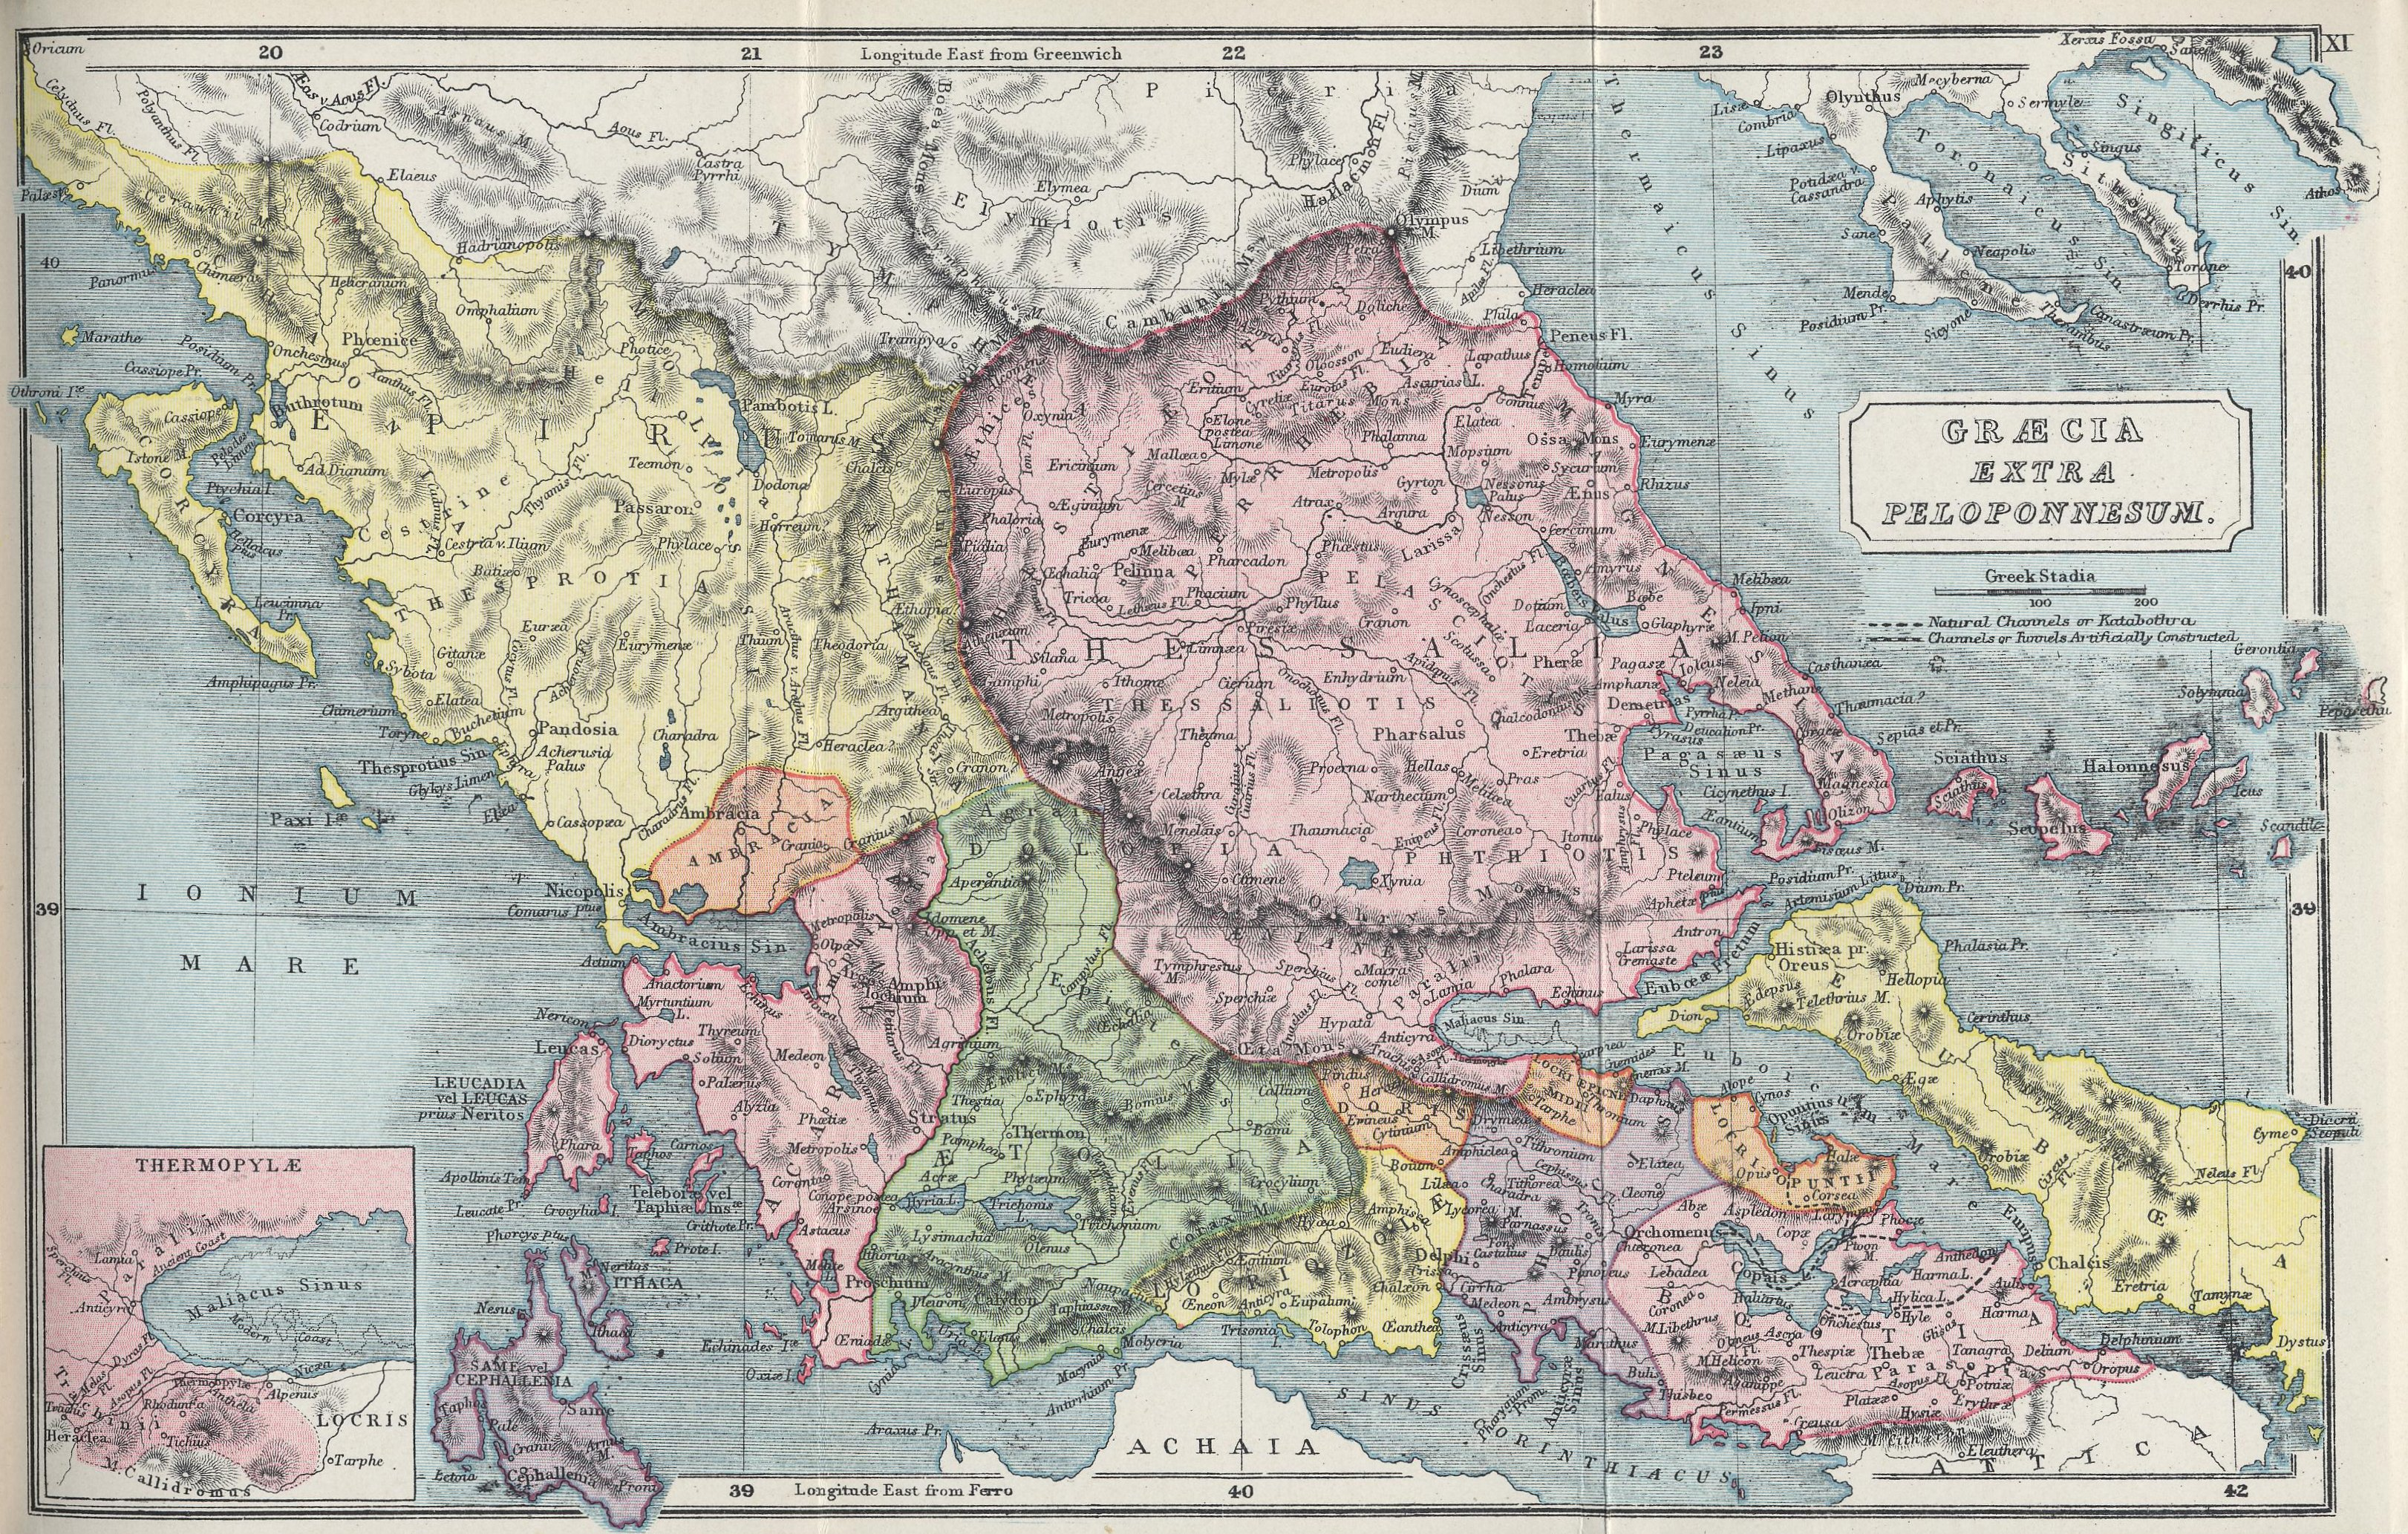 Map of Northern Greece70 BC - AD 180